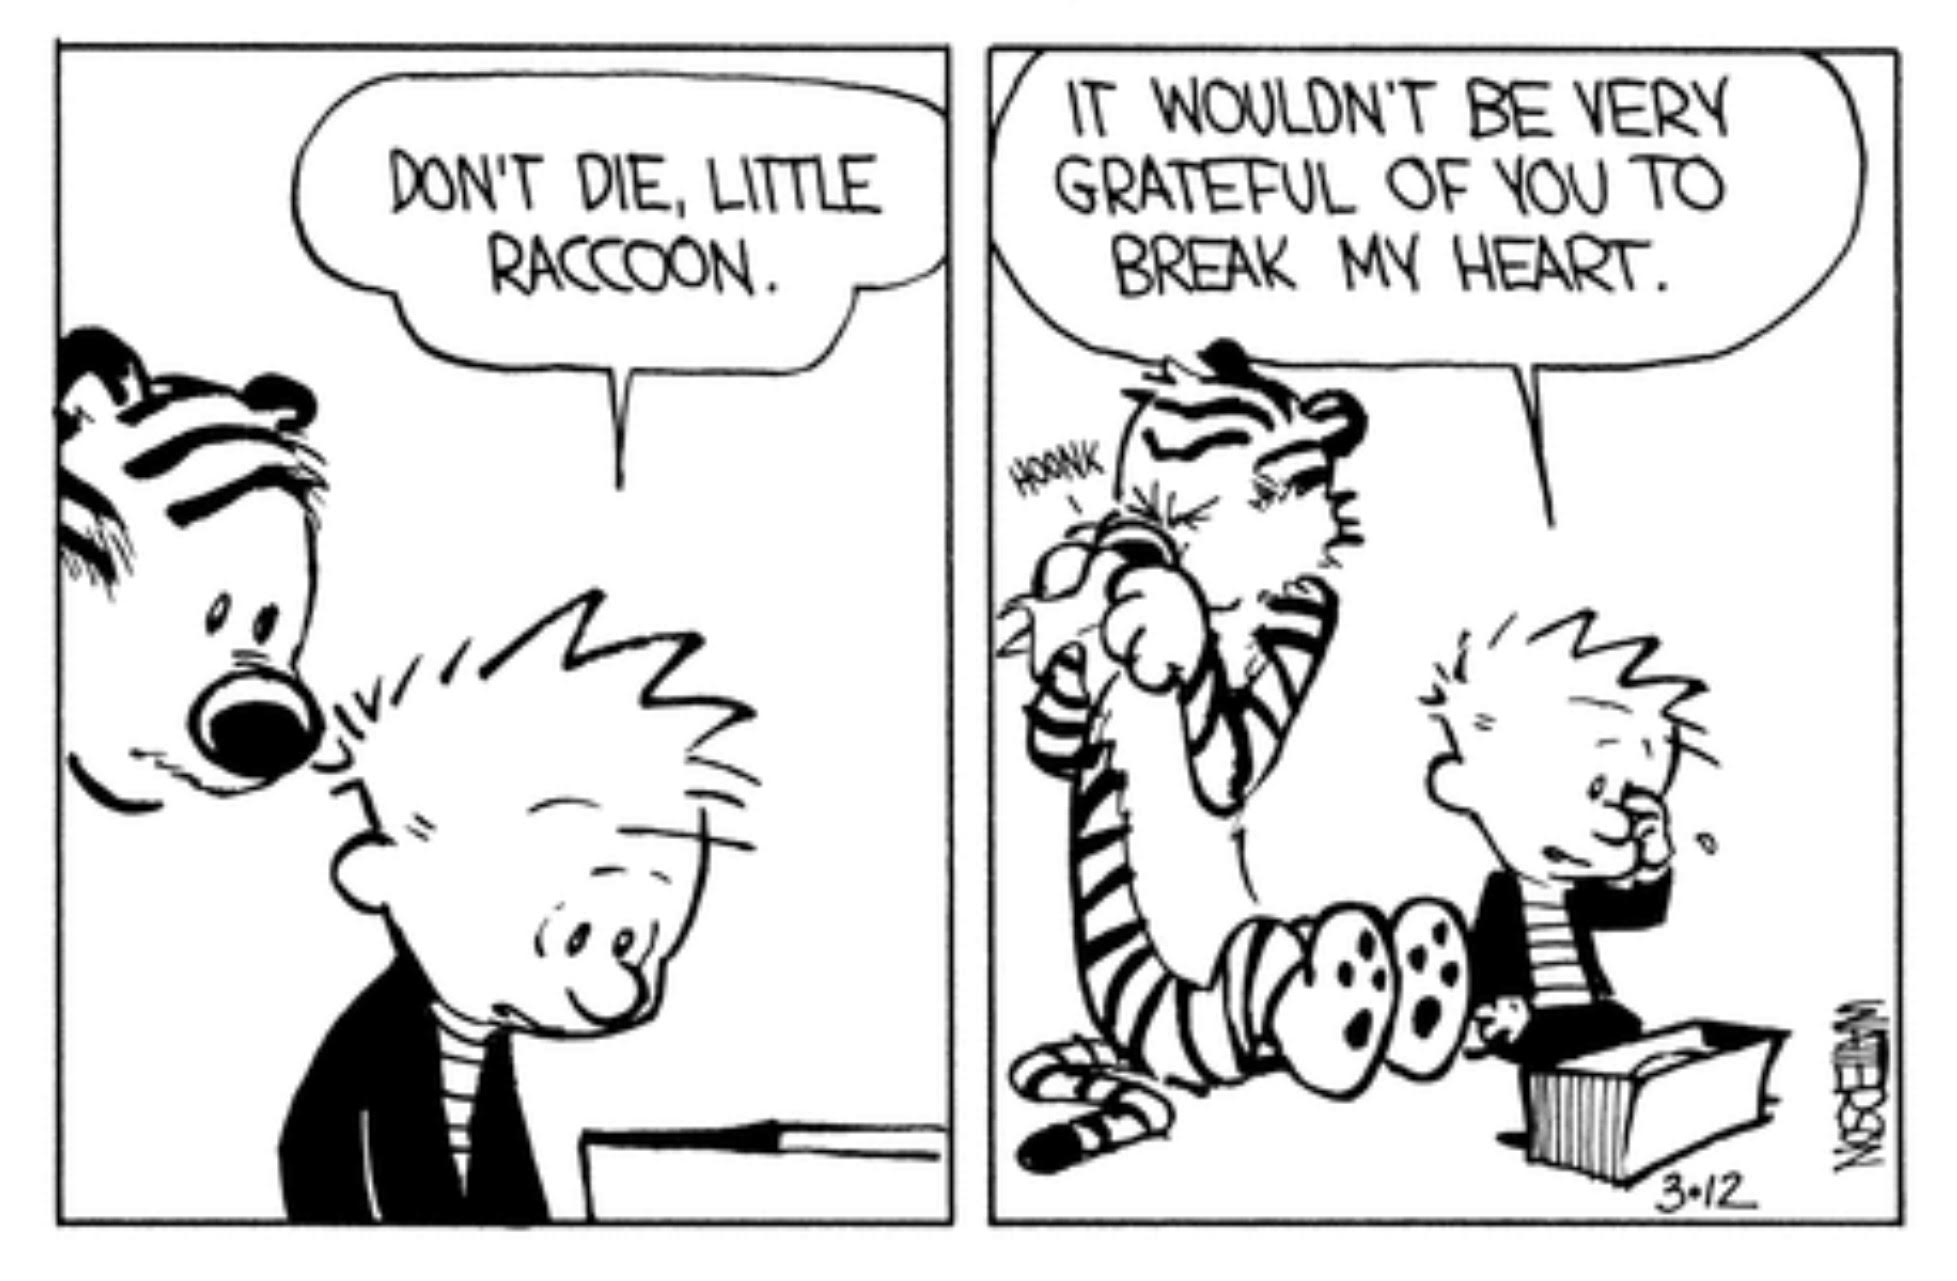 calvin hobbes dont die little raccoon